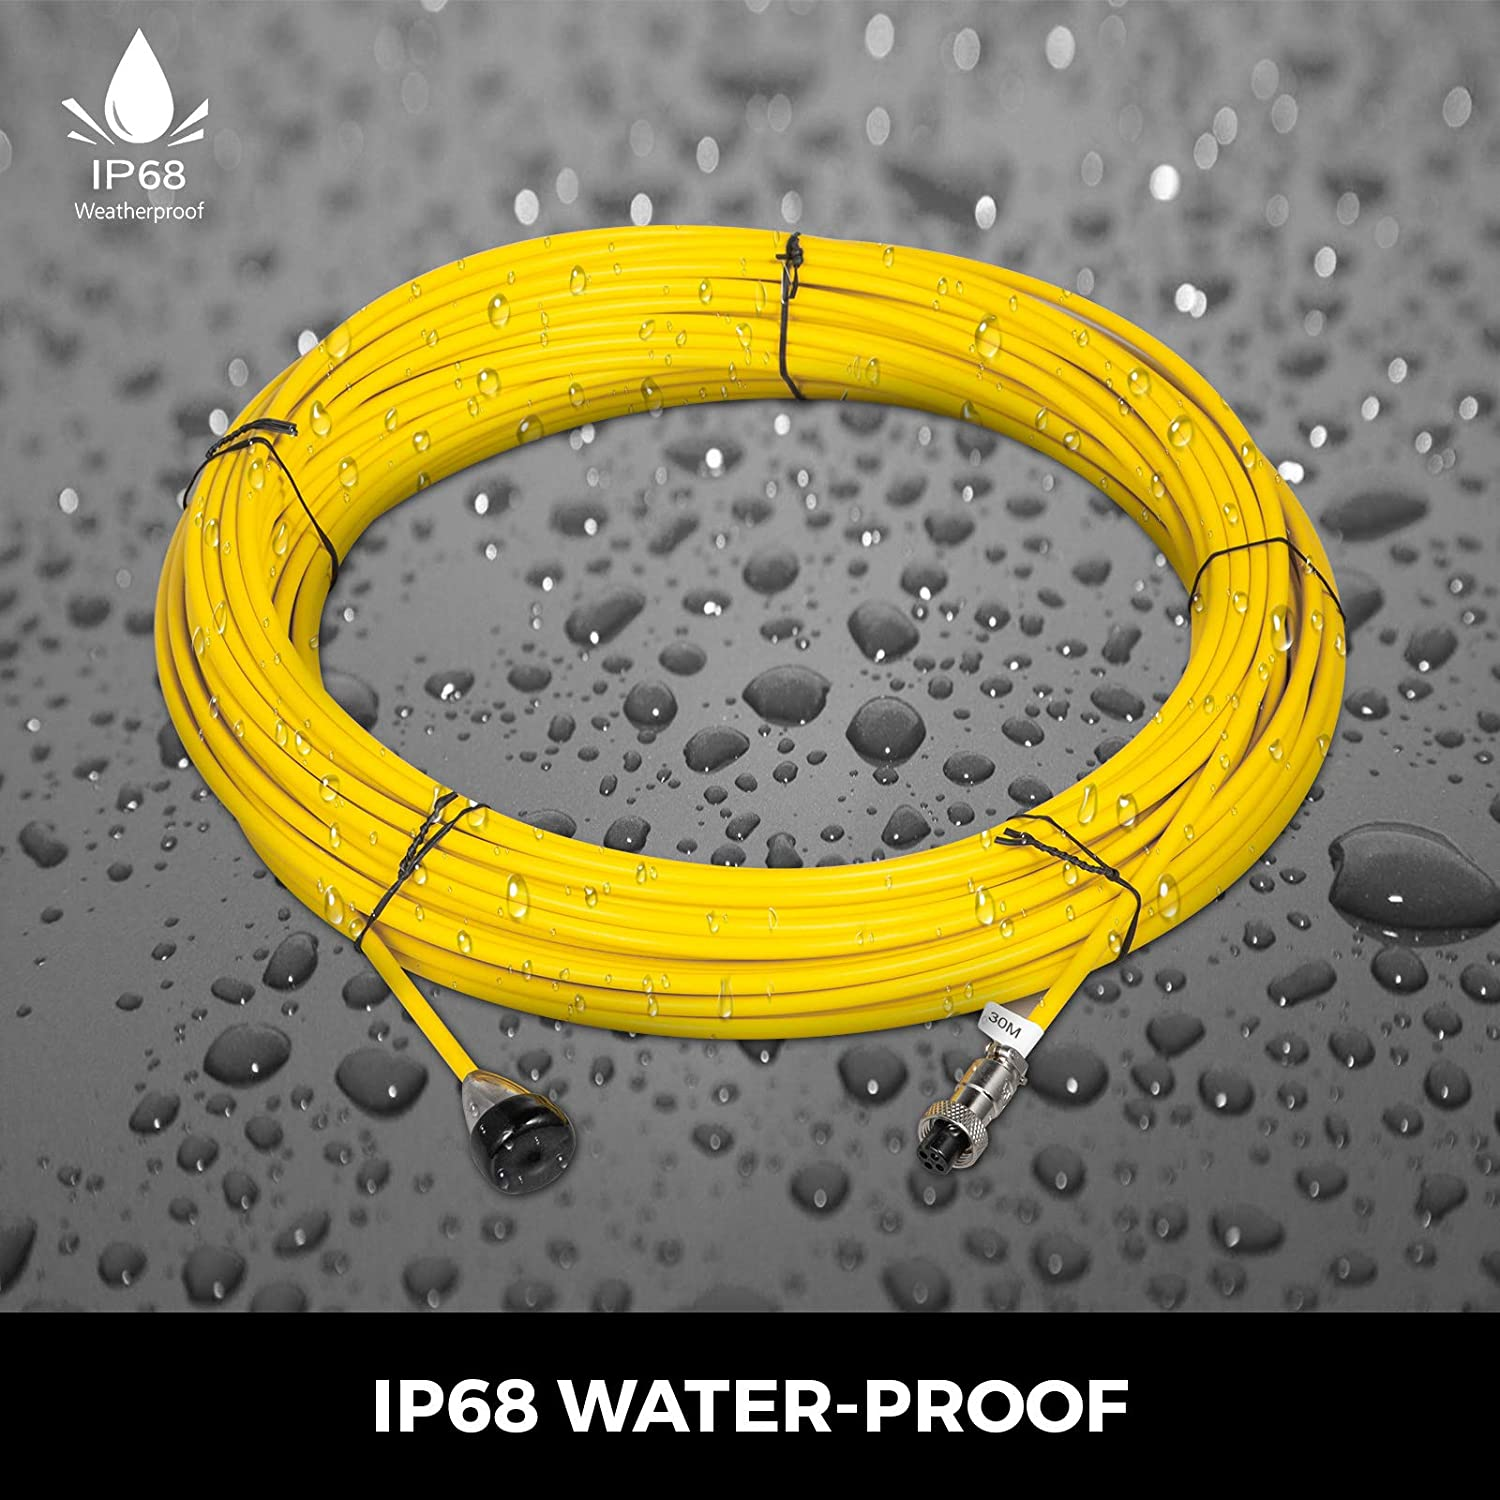 VEVOR 98.4ft//30M PVC Cover Fiberglass Sewer Camera Cable Inspection Wire Yellow Drain Pipe Sewer 5.5mm IP68 Waterproof Pipe Pipeline Inspection Camera Cable